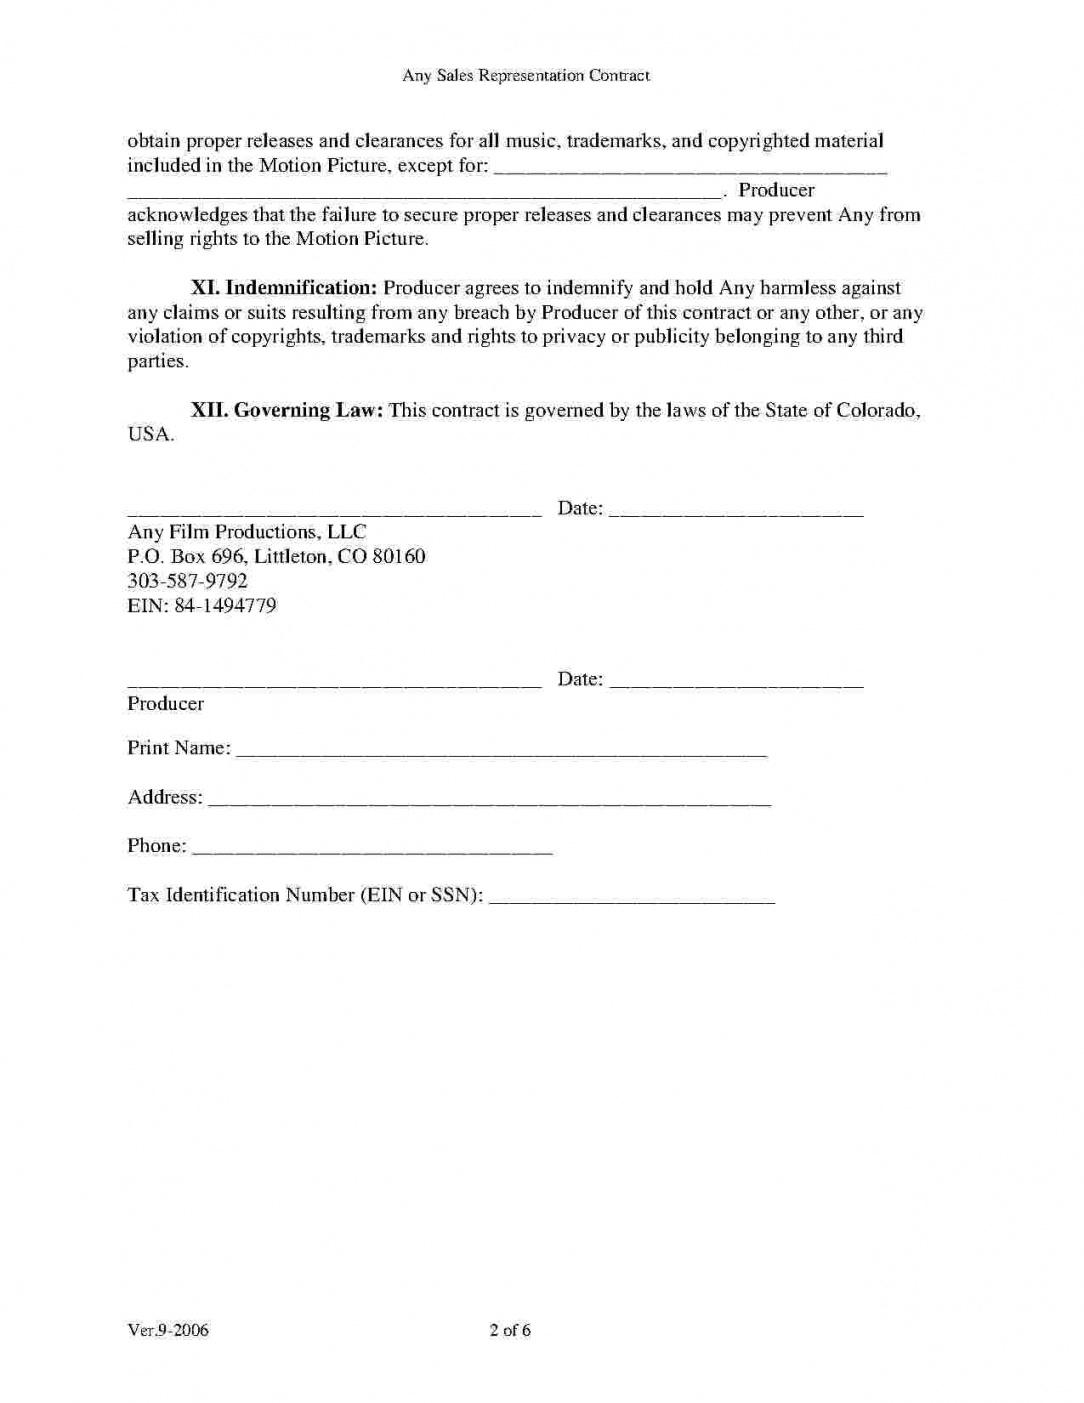 download movie production agreement style 3 template for free at film production agreement contract template